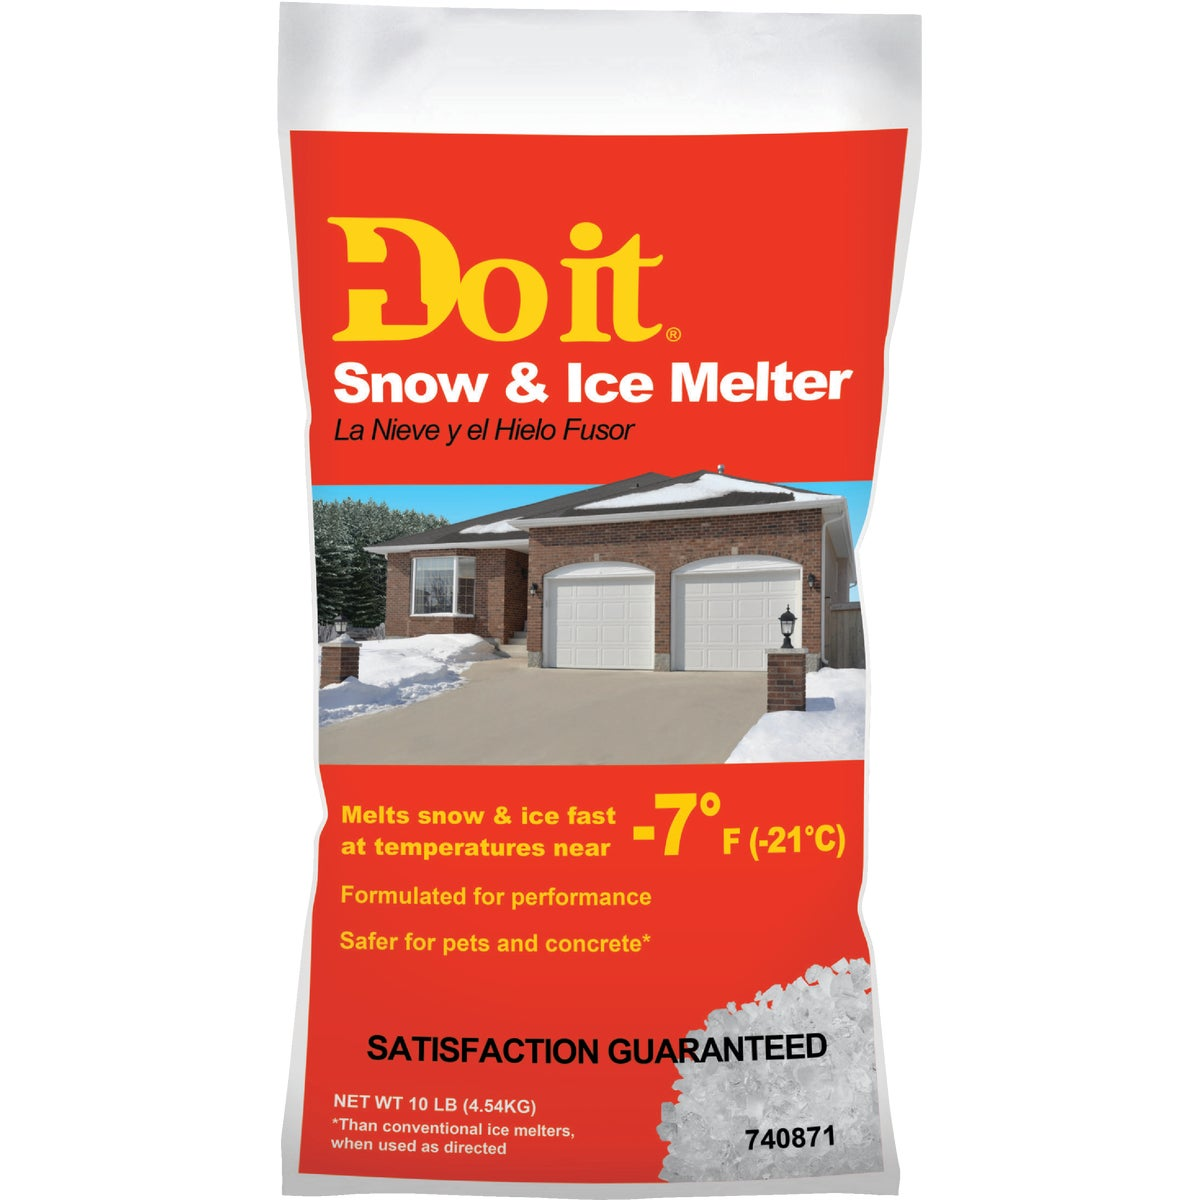 10LB ICE MELTER